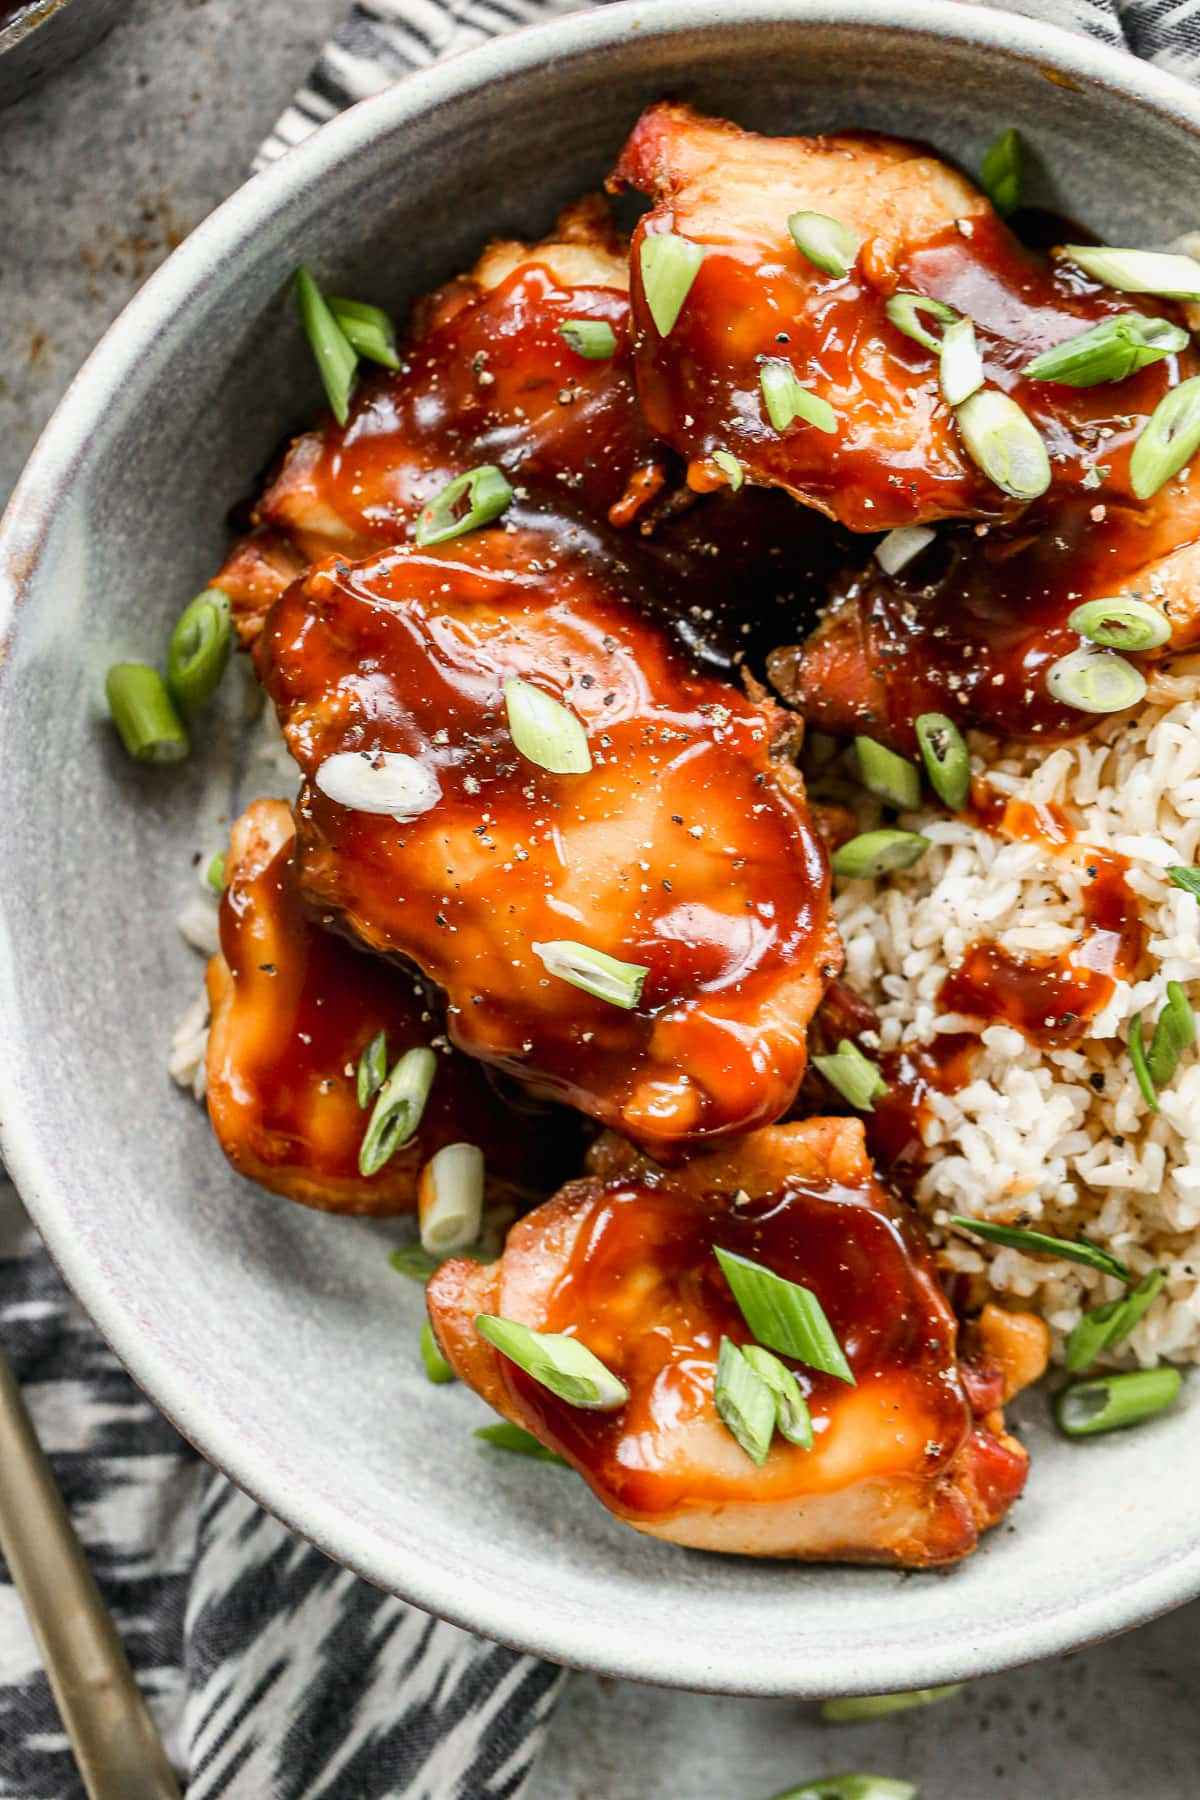 This Crock Pot Bourbon Chicken is the perfect slow cooker recipe! It's easy, delicious, and made with simple ingredients. The whole family loves it! @wellplated